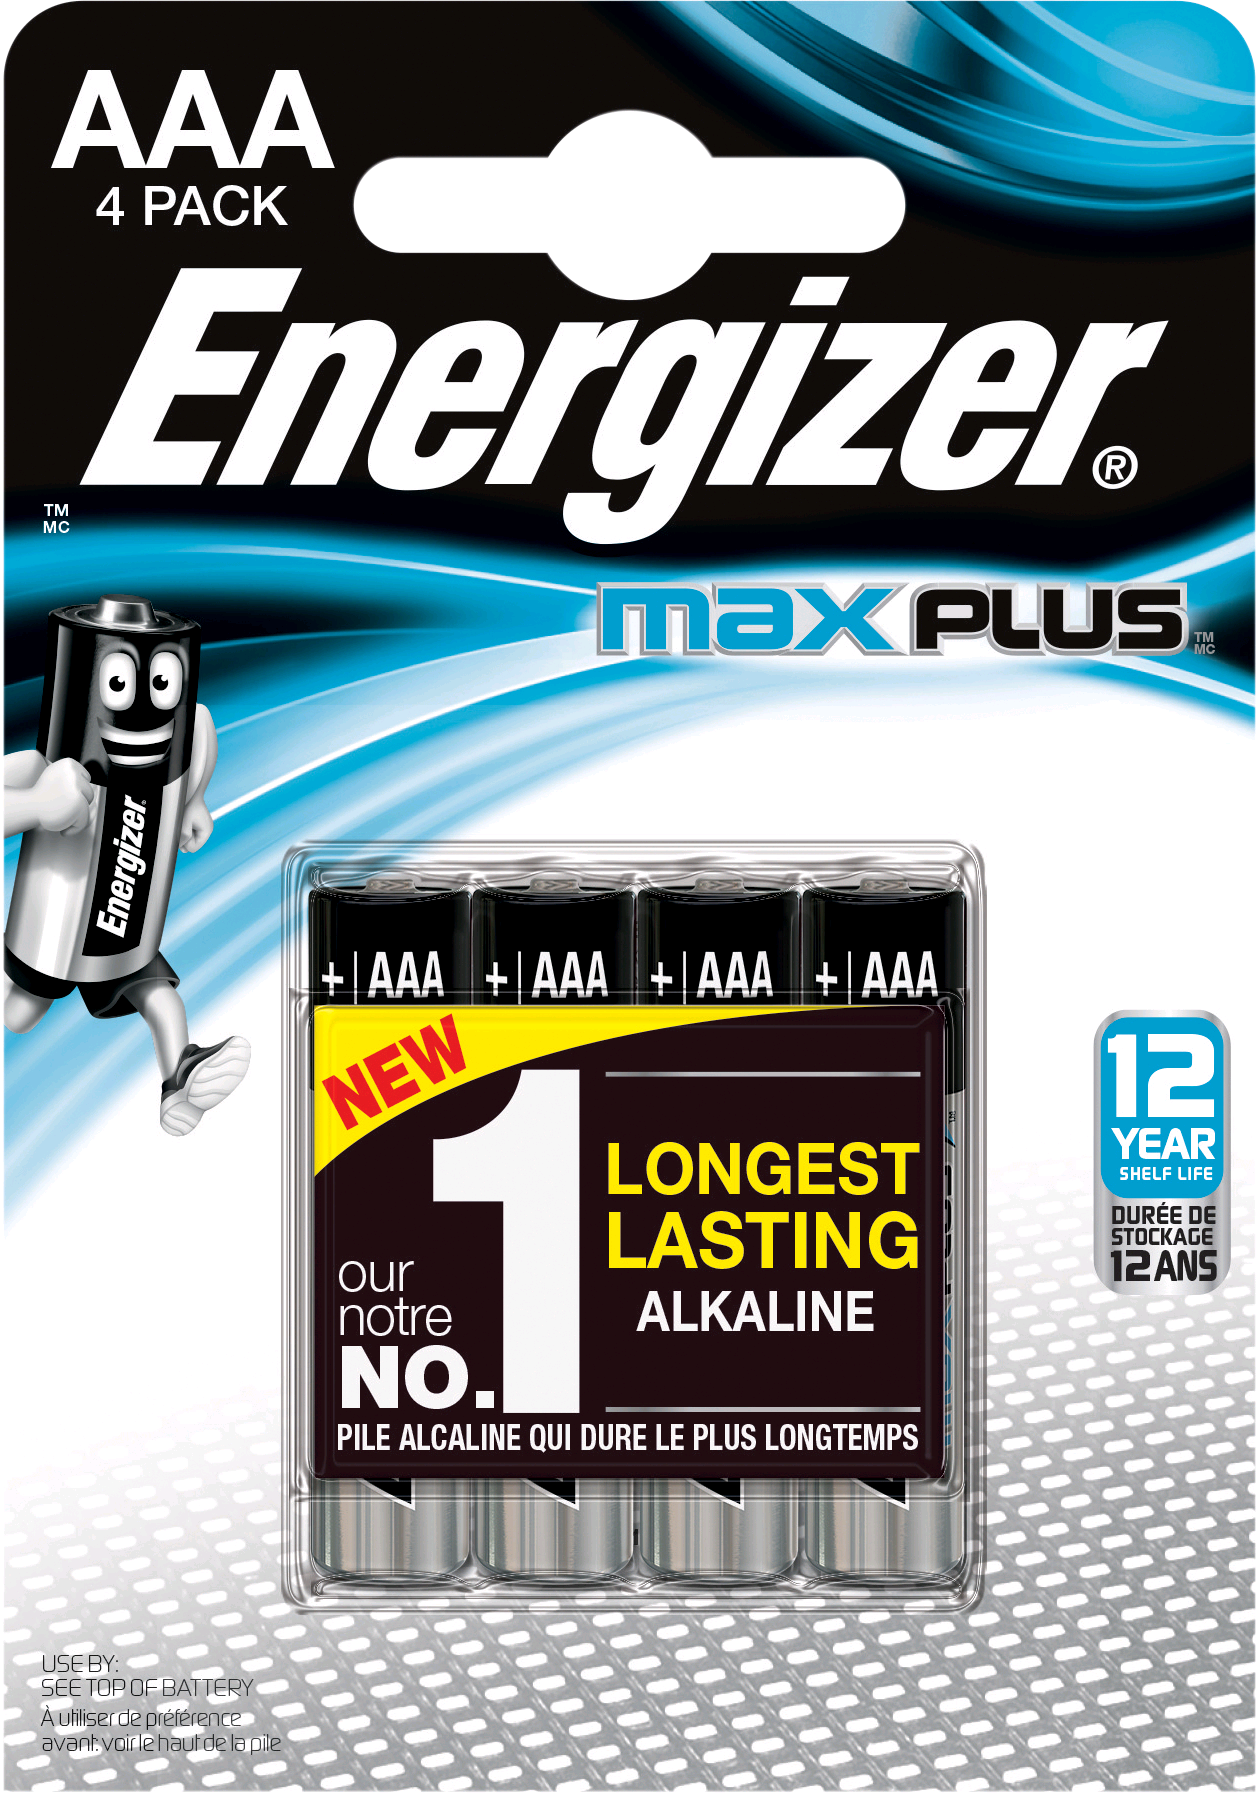 Energizer MAX Plus Power AAA Battery 4 Pack